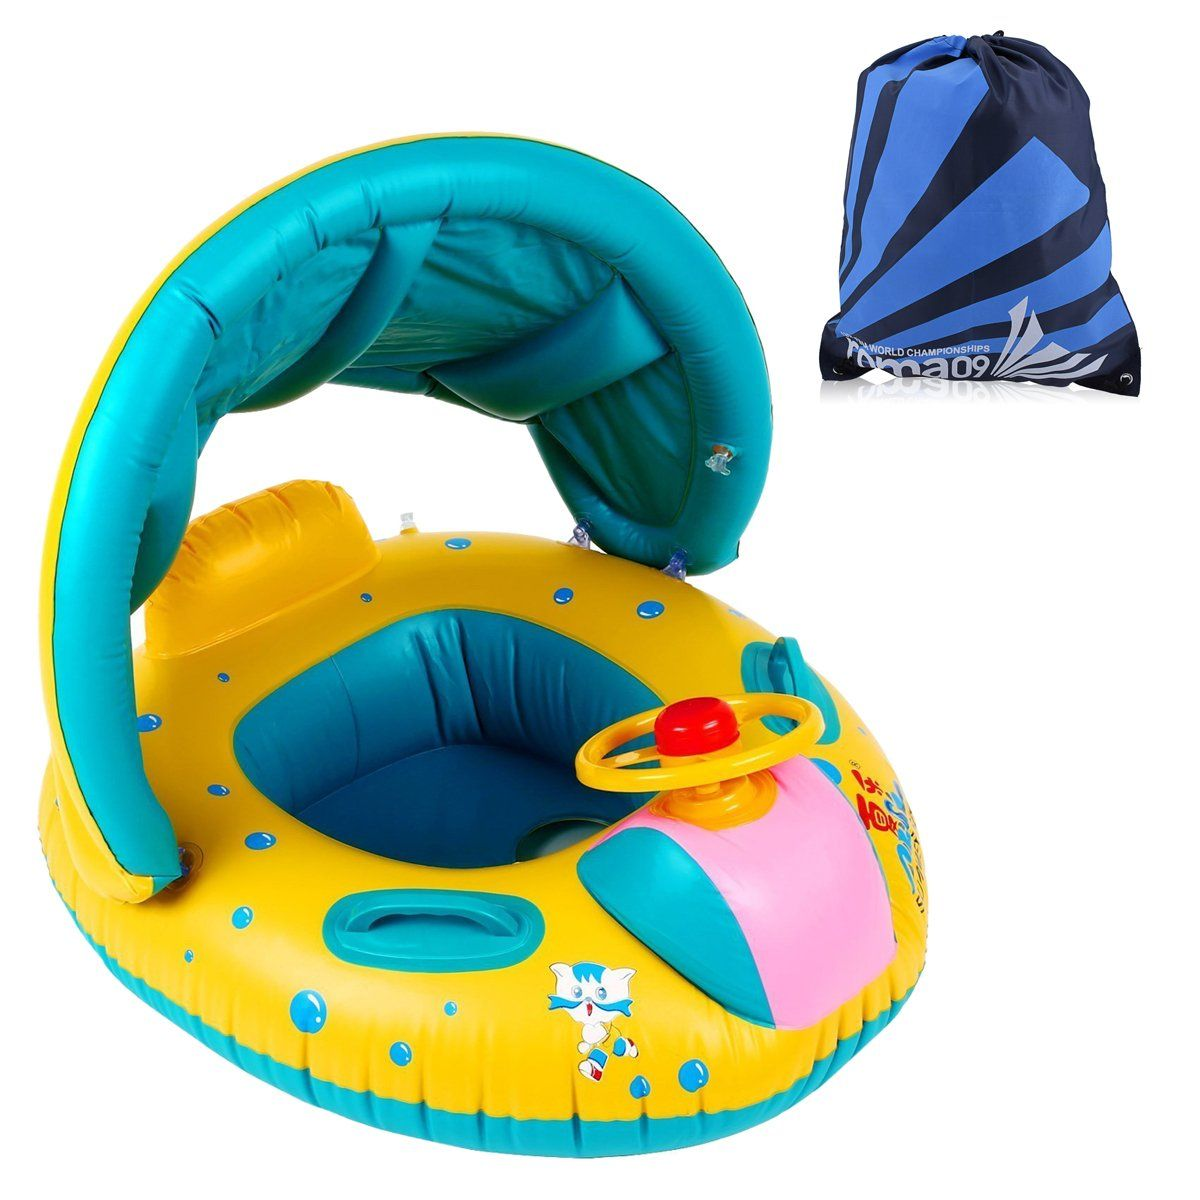 Baby Child Toddler Swimming Ring Pool Float Seat Boat Swim Bath Ring Raft Toys With Detachable Canopy And Portable Bag Toddler Swimming Portable Bag Baby Float